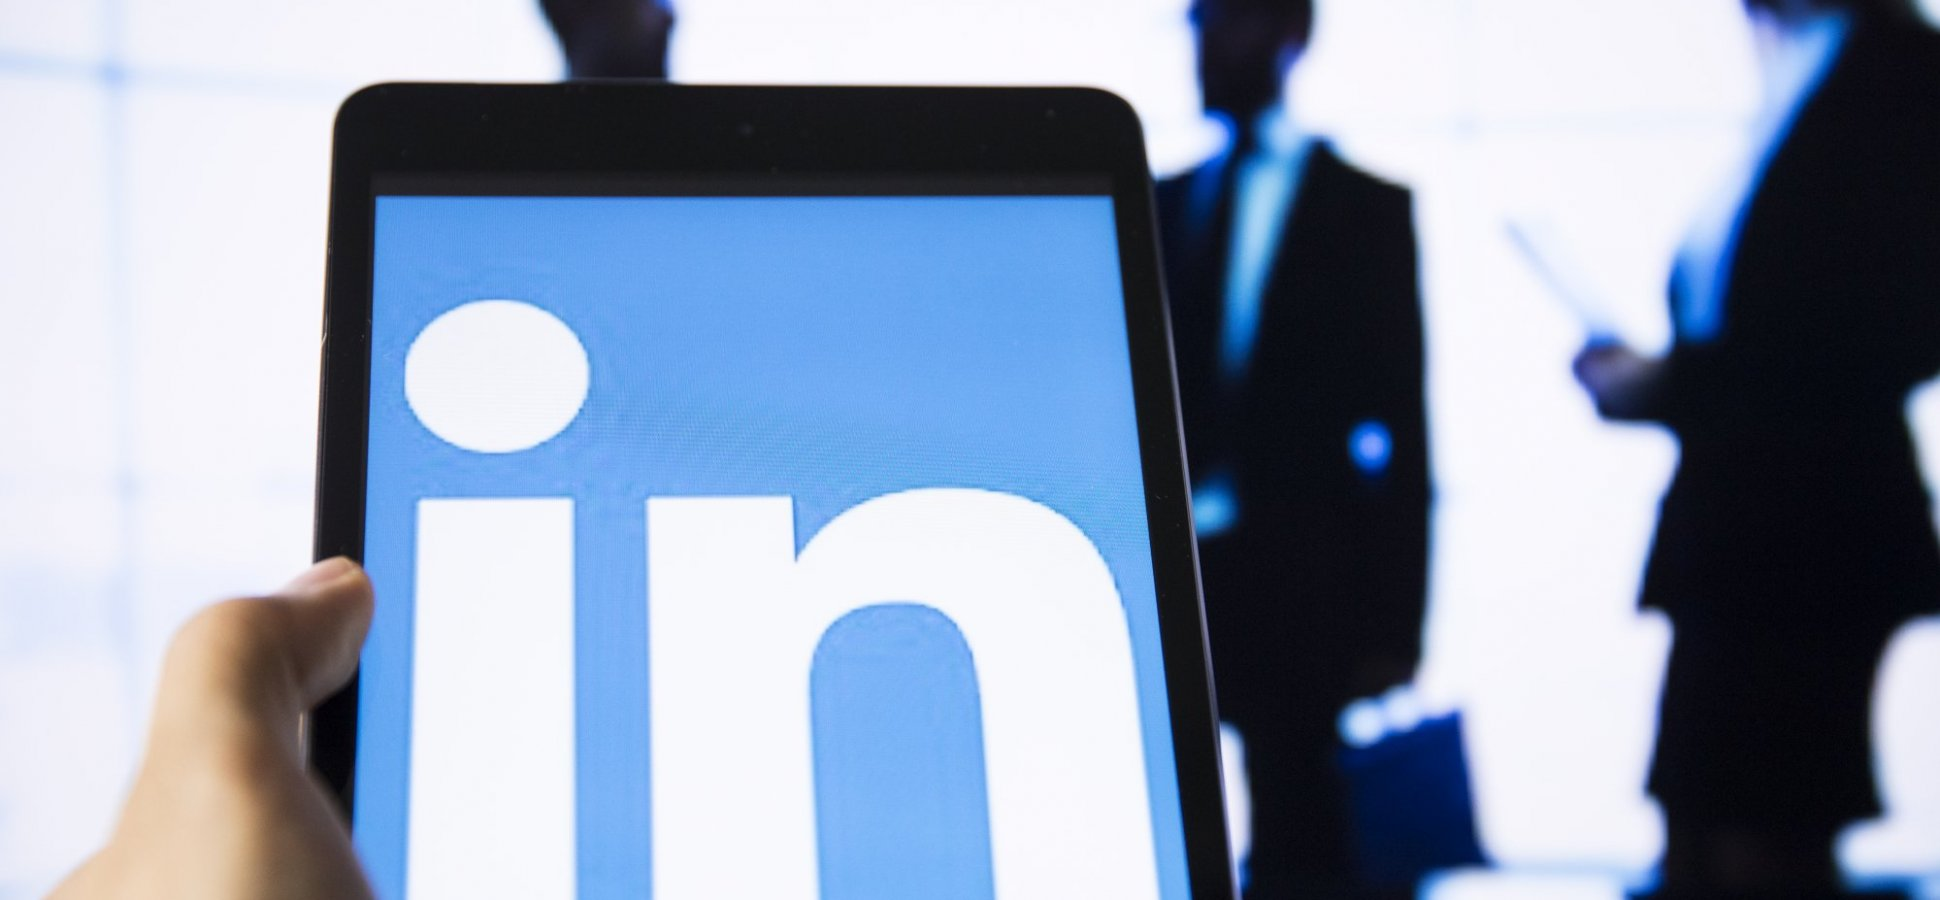 LinkedIn's Top Interview Questions to Assess Soft Skills Are Here (You Can Use Them Too)